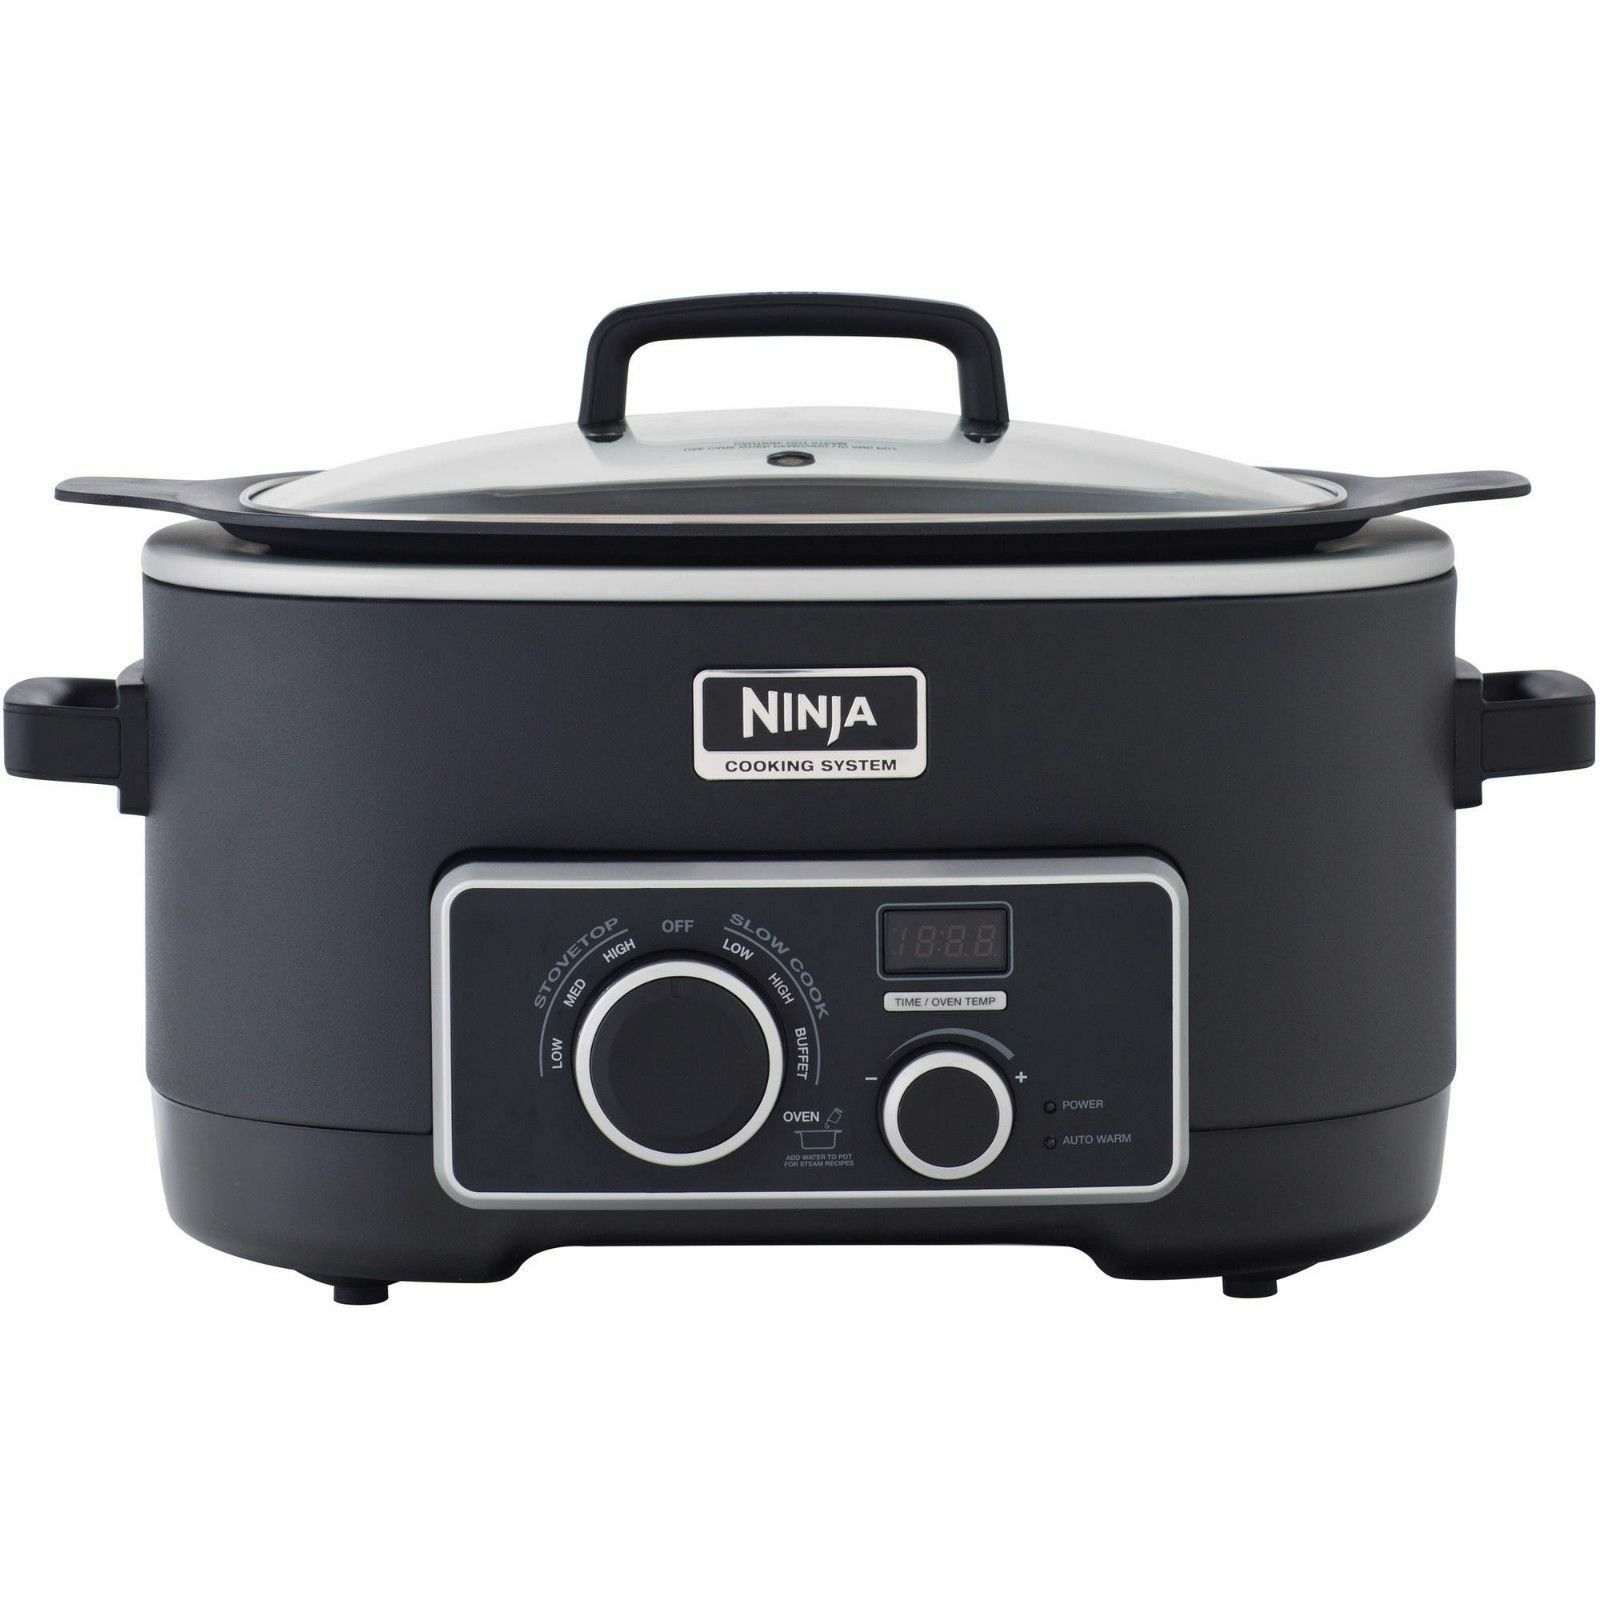 Sharkninja MC750 Ninja 3in1 Cooking System BLK